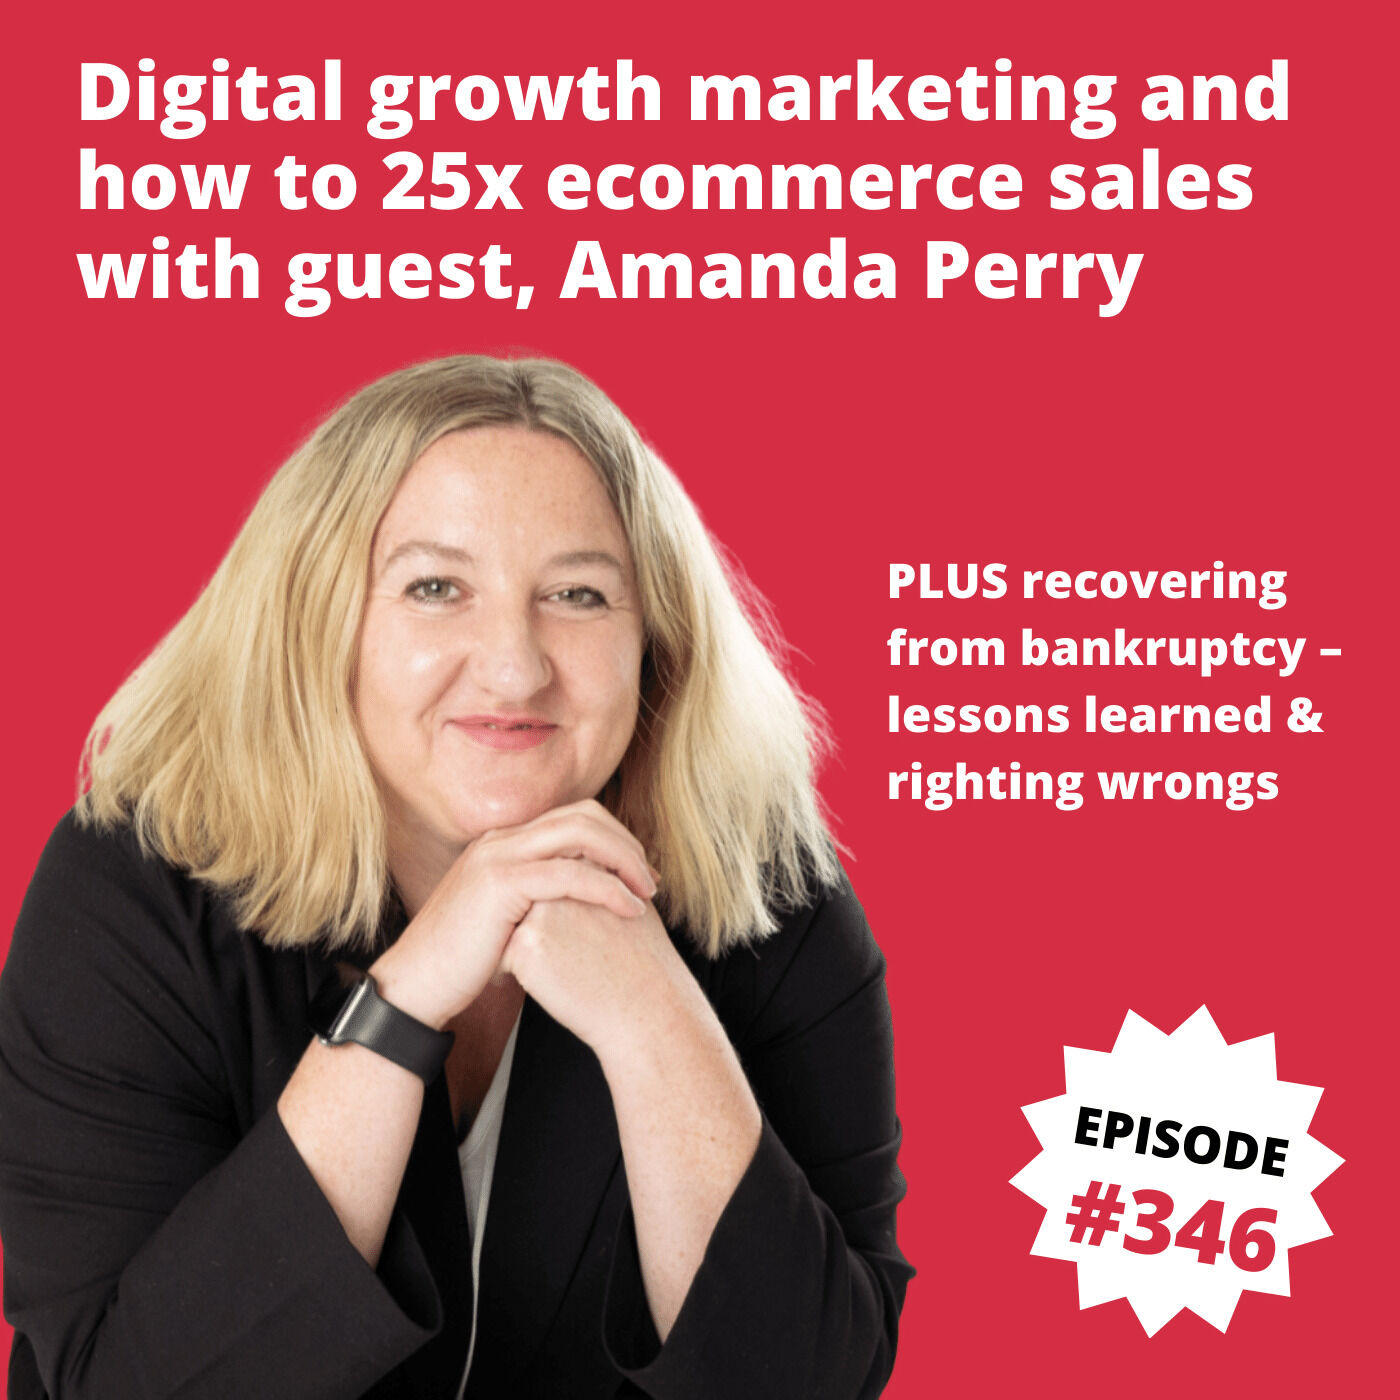 Digital growth marketing and how to 25x ecommerce sales with Amanda Perry